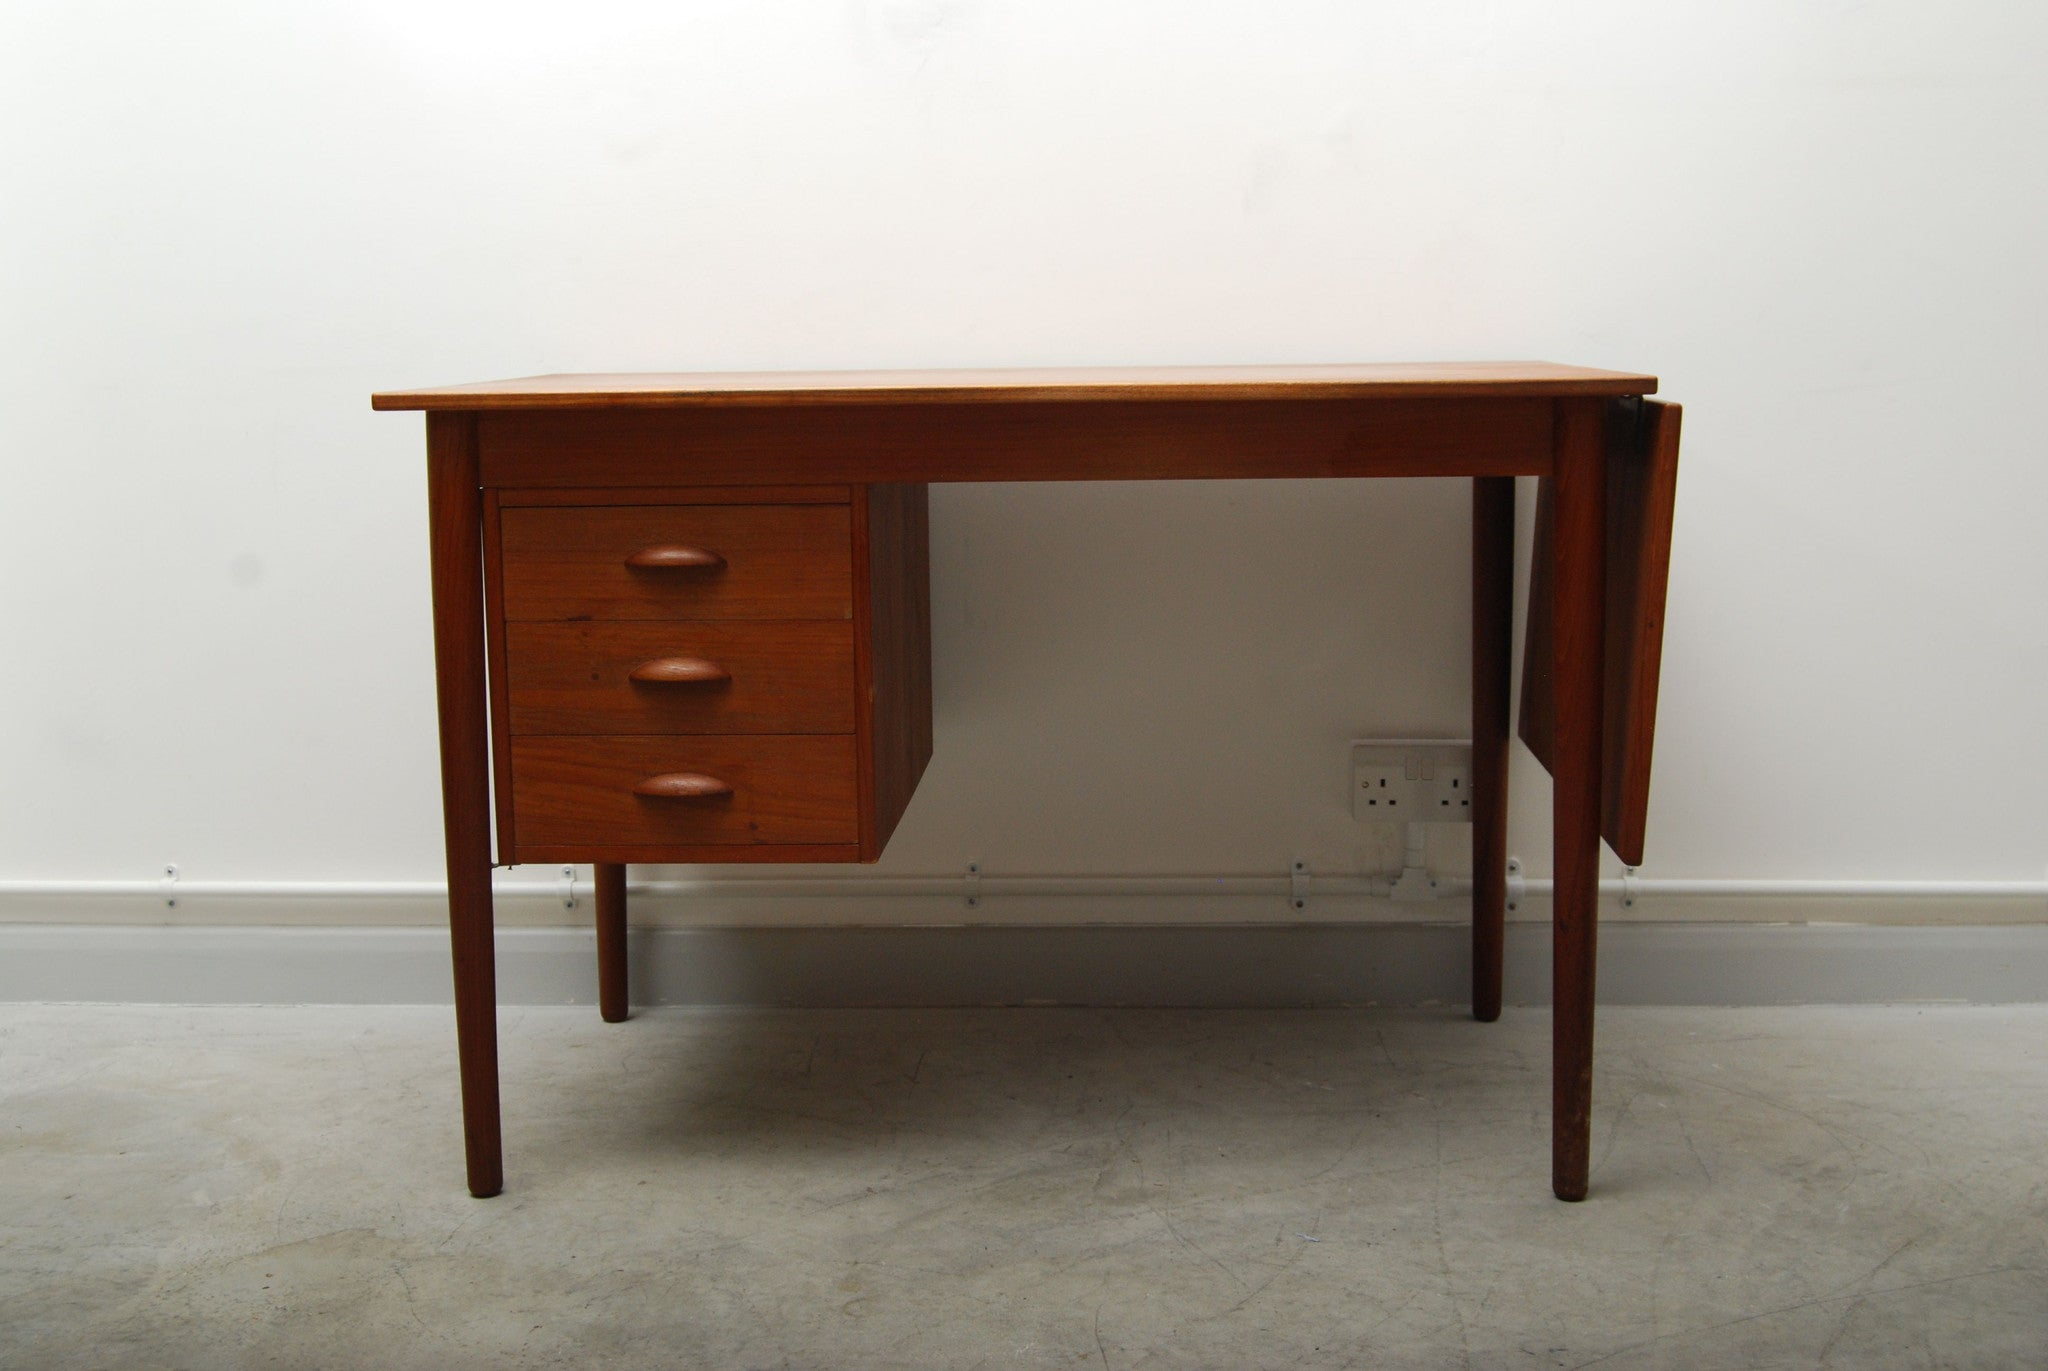 Teak desk with drop leaf extension